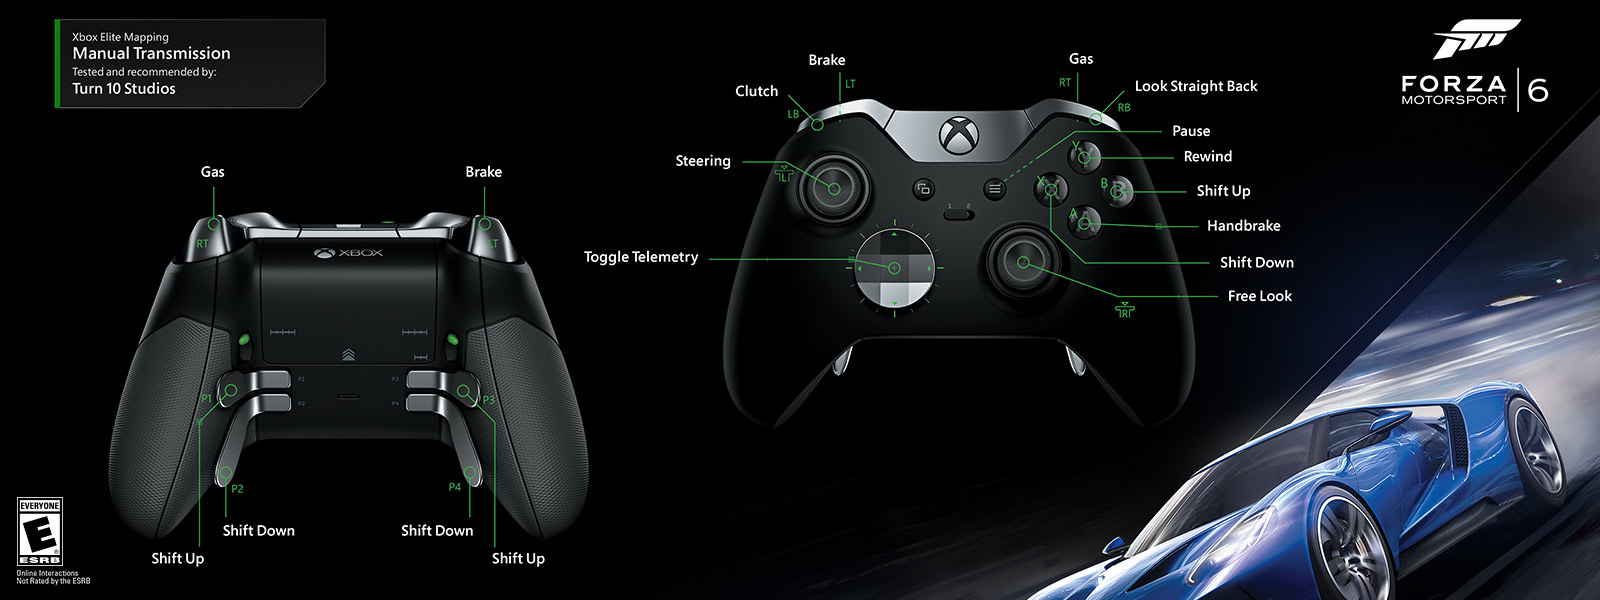 hight resolution of  forza motorsport 6 manual transmission elite mapping